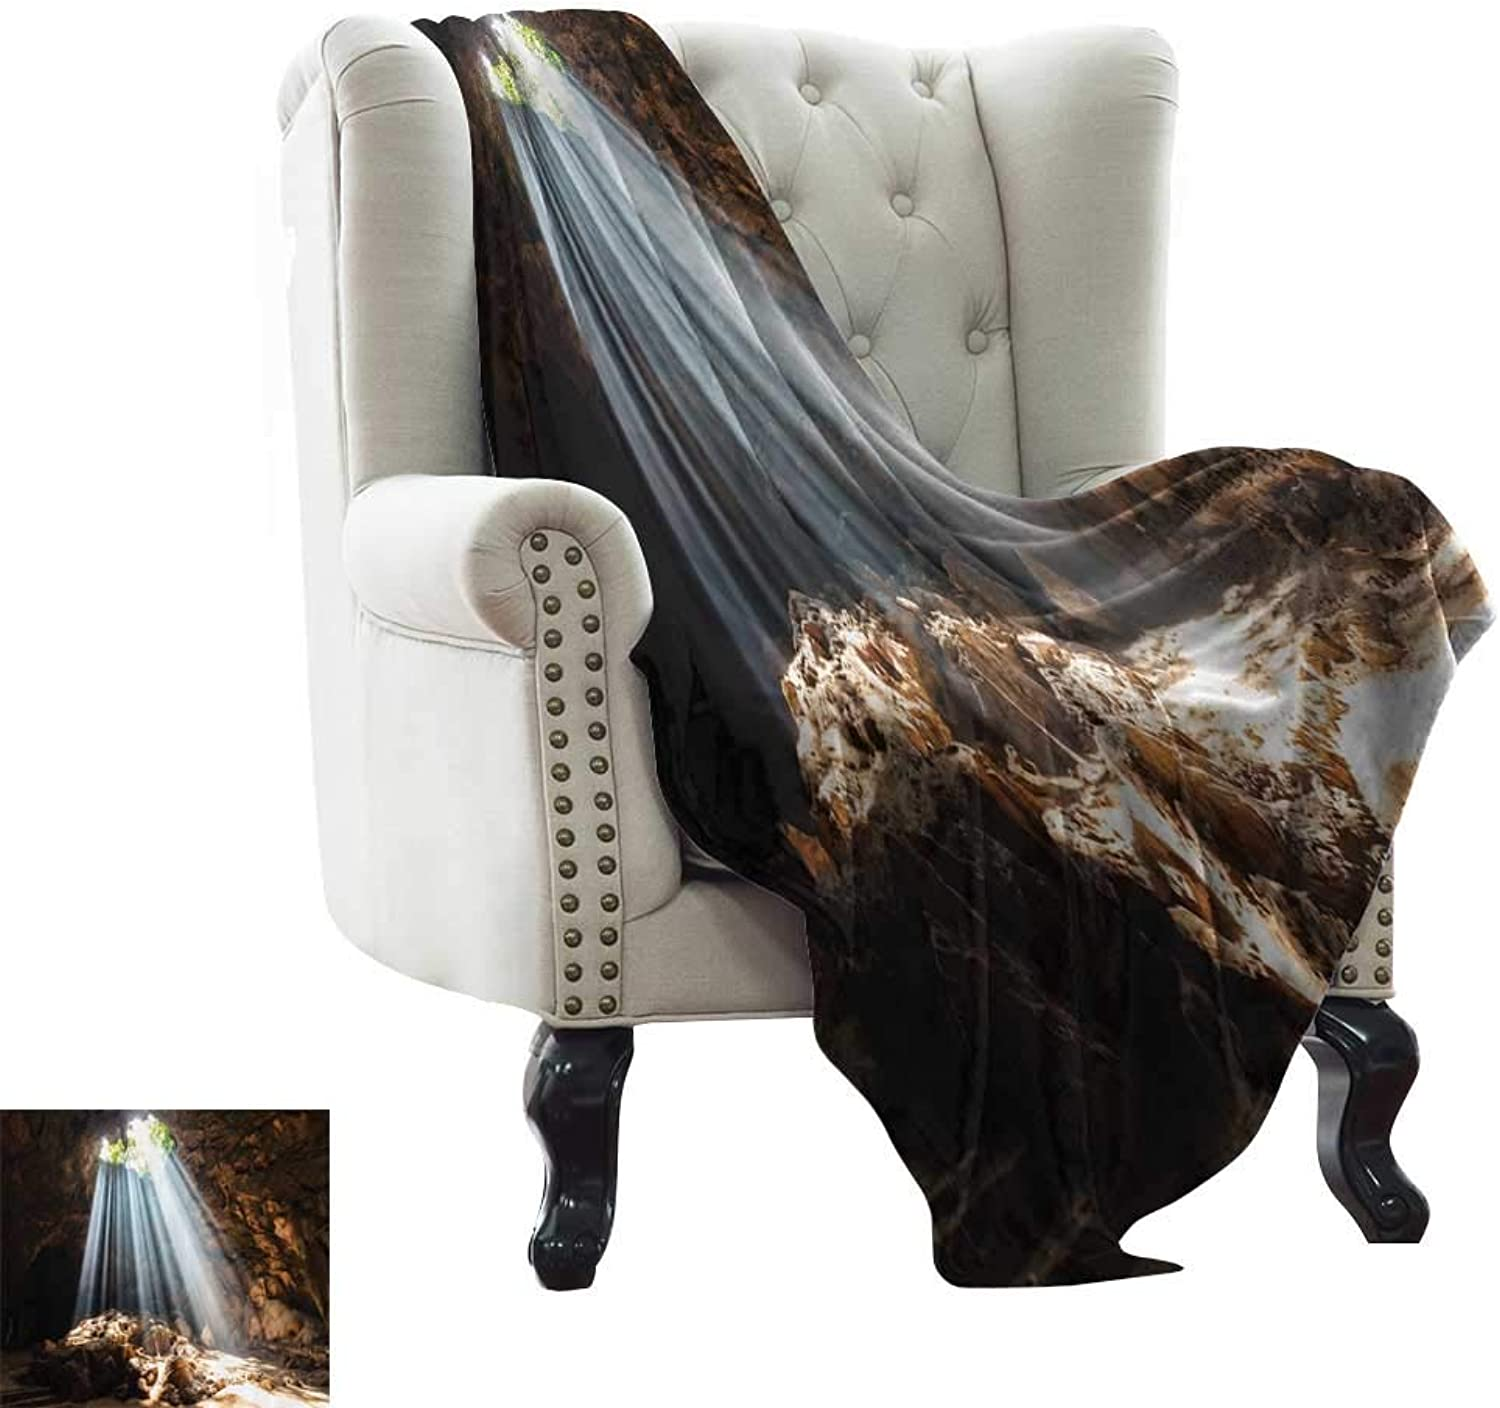 Natural Cave,Bed Sheet Photography Pictures Decorations Mystic Daylight for Rehabilitation Exercises Place a Part of The Mountain Design 70 x60  Super Soft Boys Warm Blanket Brown White Green